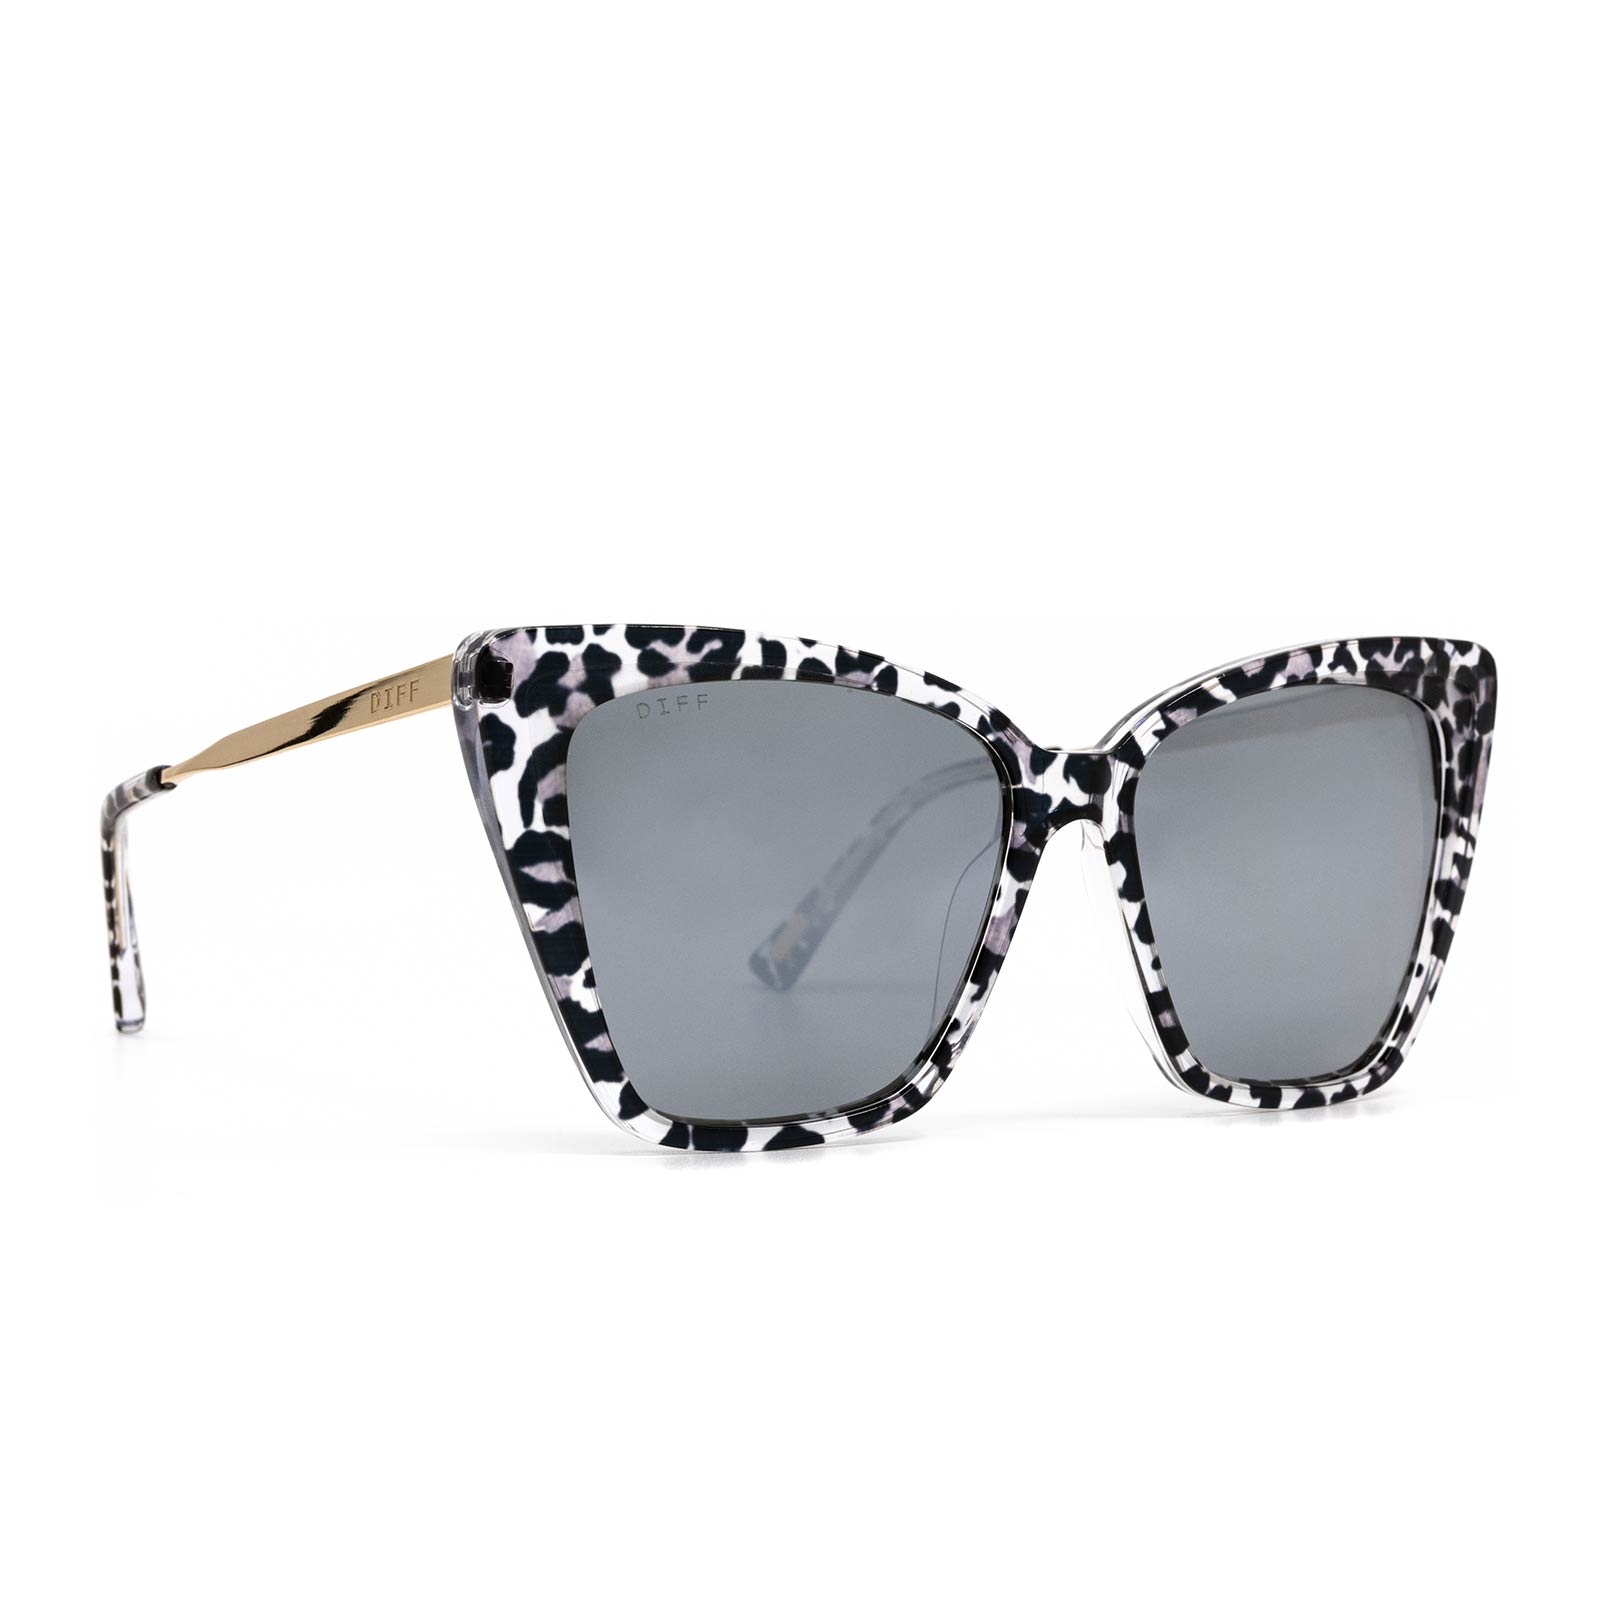 Becky II sunglasses with clear leopard frame and grey mirror lens- angle view